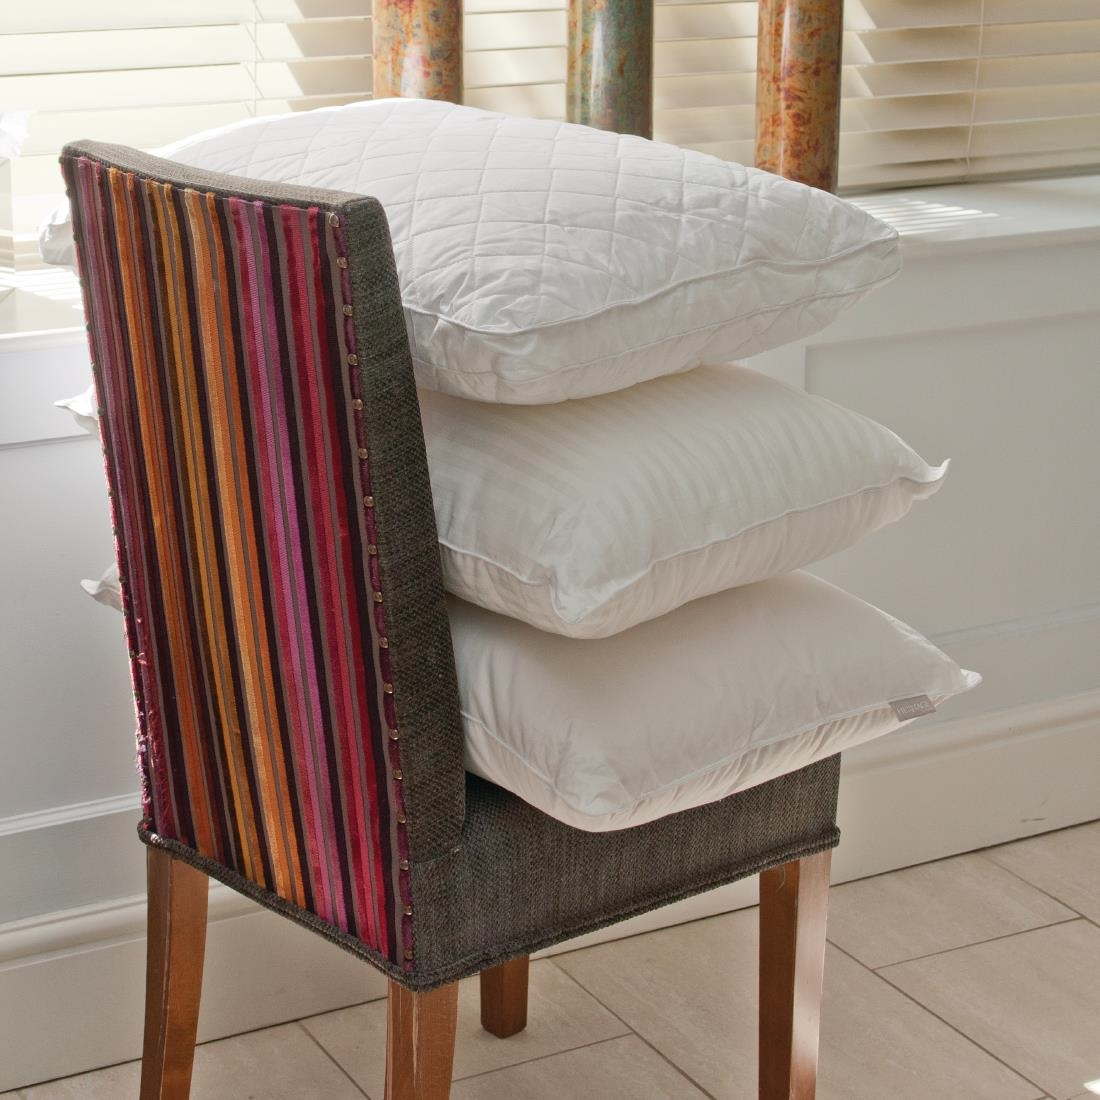 Image of Mitre Heritage Abbey Pillows Firm